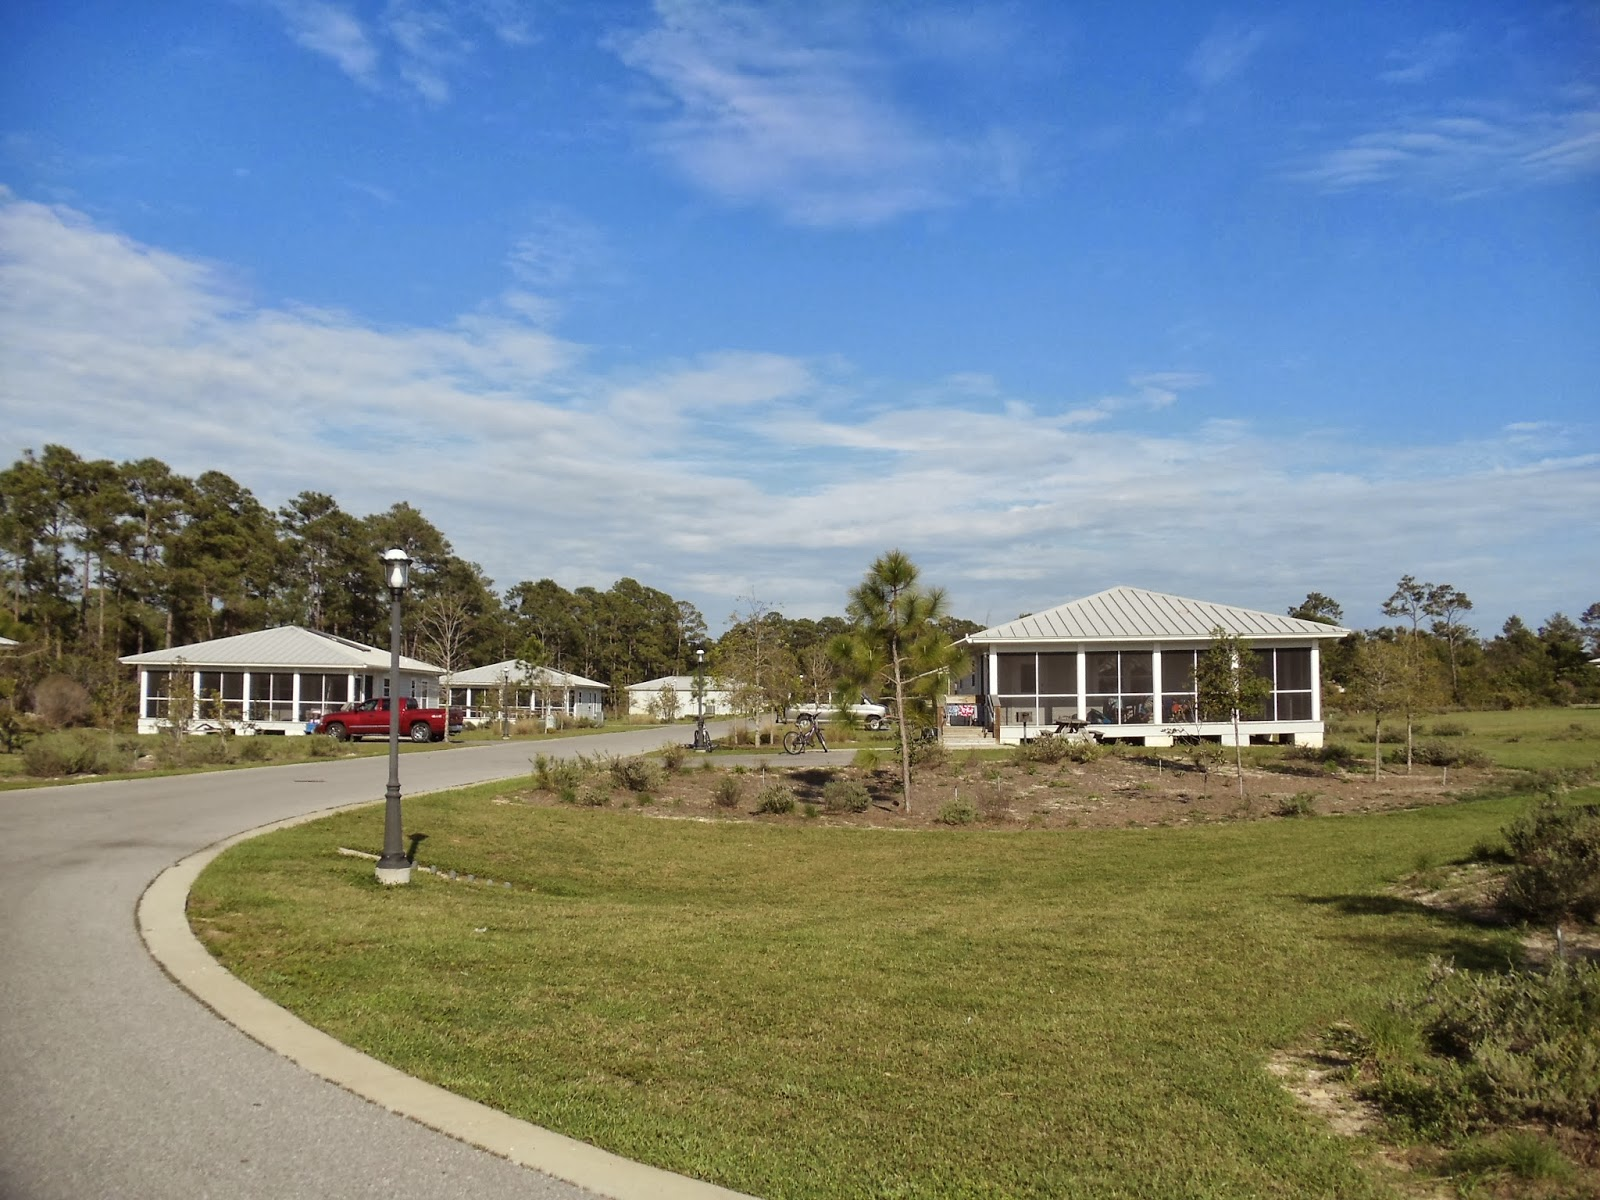 Topsail hill preserve state park cabins for Florida state parks cabins